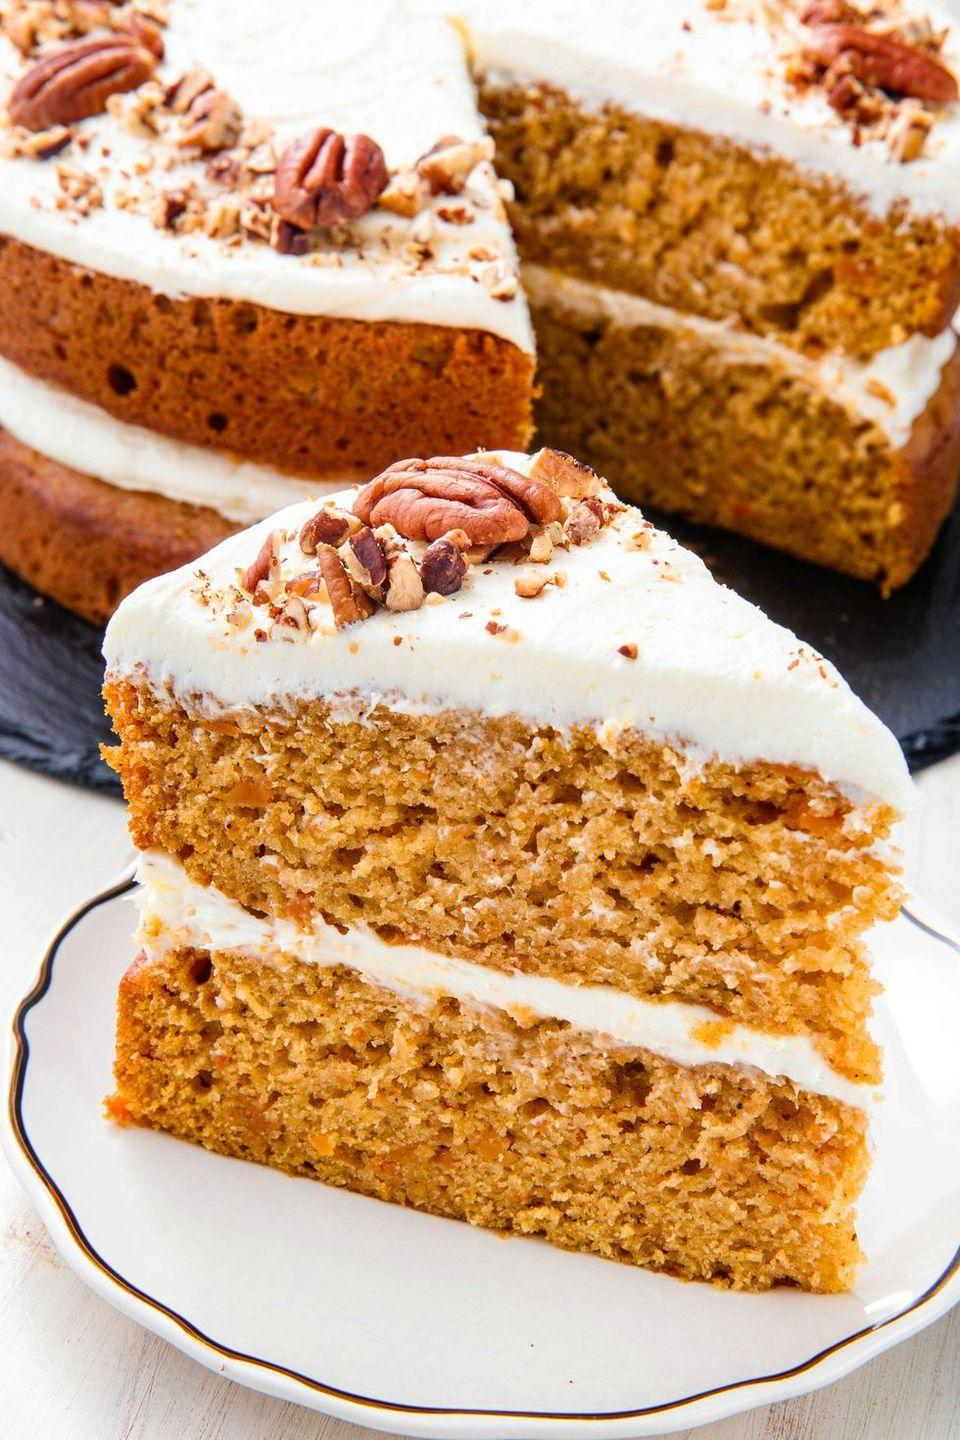 """<p>Marshmallow fluff frosting? Yes please.</p><p>Get the recipe from <a href=""""https://www.delish.com/holiday-recipes/thanksgiving/a23011942/best-sweet-potato-cake-recipe/"""" rel=""""nofollow noopener"""" target=""""_blank"""" data-ylk=""""slk:Delish"""" class=""""link rapid-noclick-resp"""">Delish</a>.</p>"""